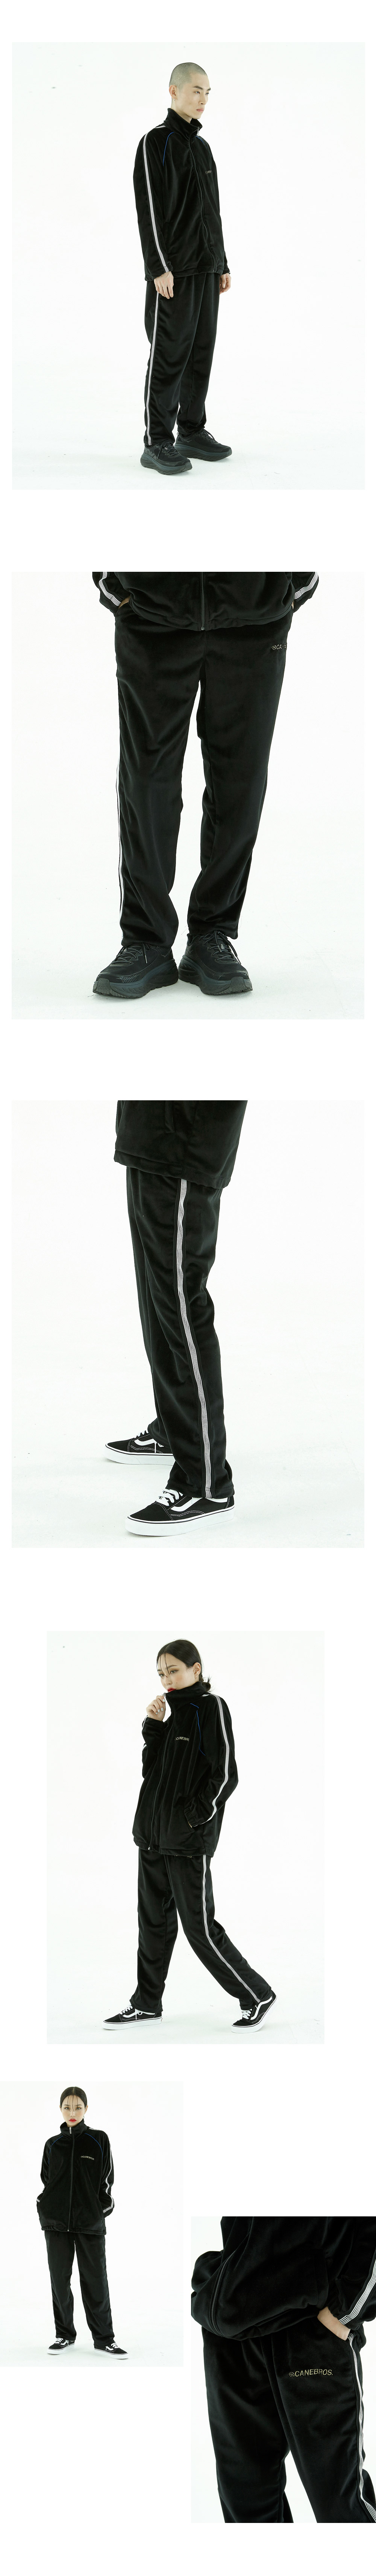 VELOUR-TRACK-PANTS-BK_03.jpg